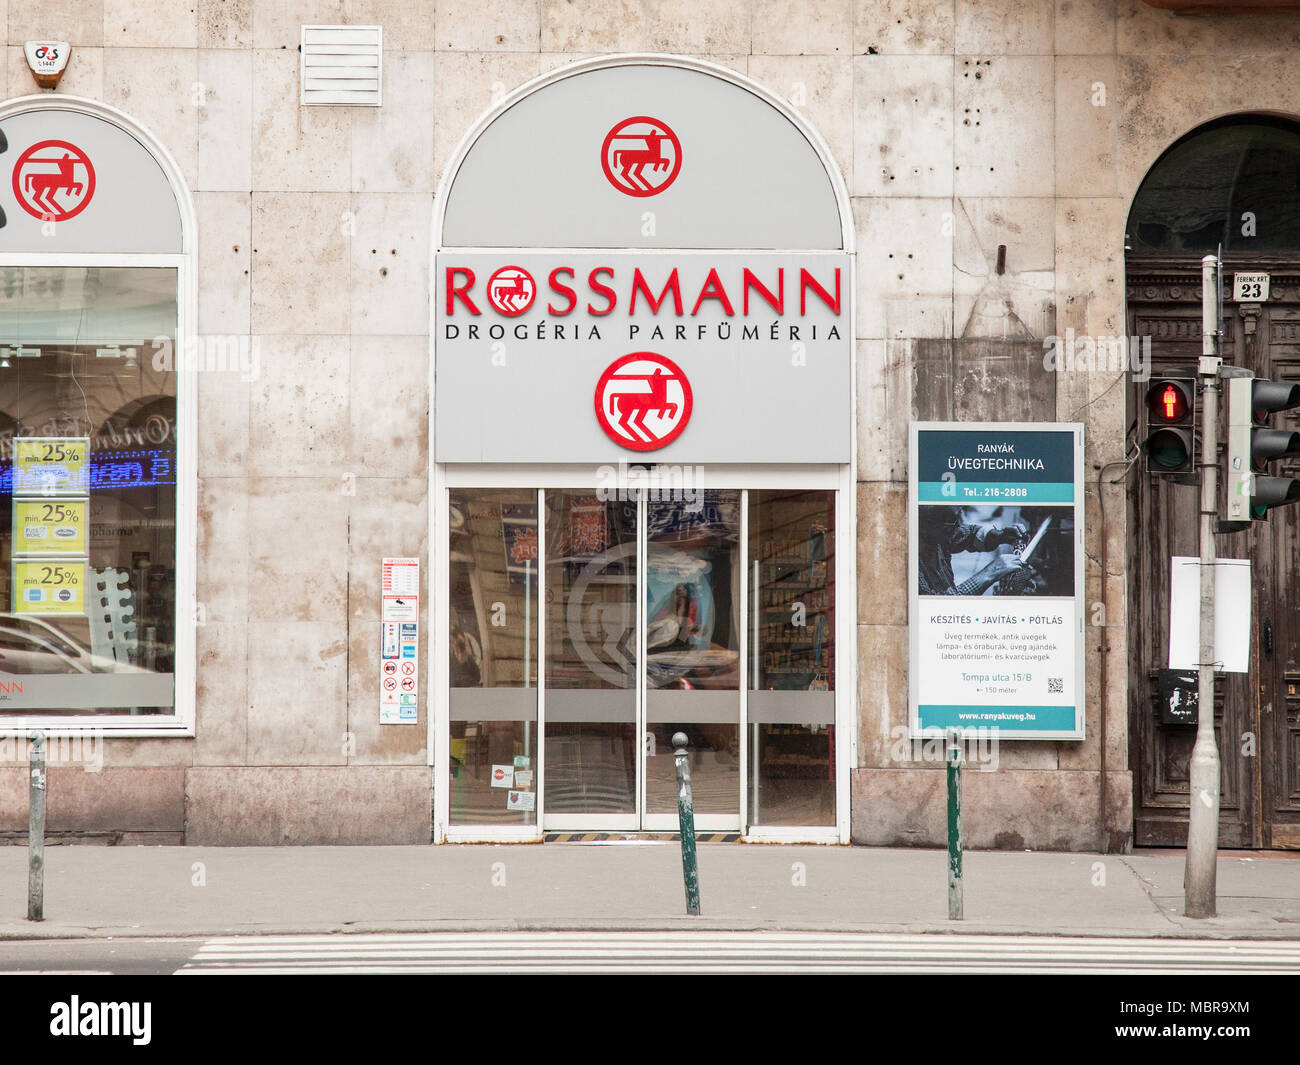 BUDAPEST, HUNGARY - APRIL 7, 2018: Rossmann logo on one of their shops for Hungary. Rossmann is a German Cosmectics and drug store brand developped in - Stock Image